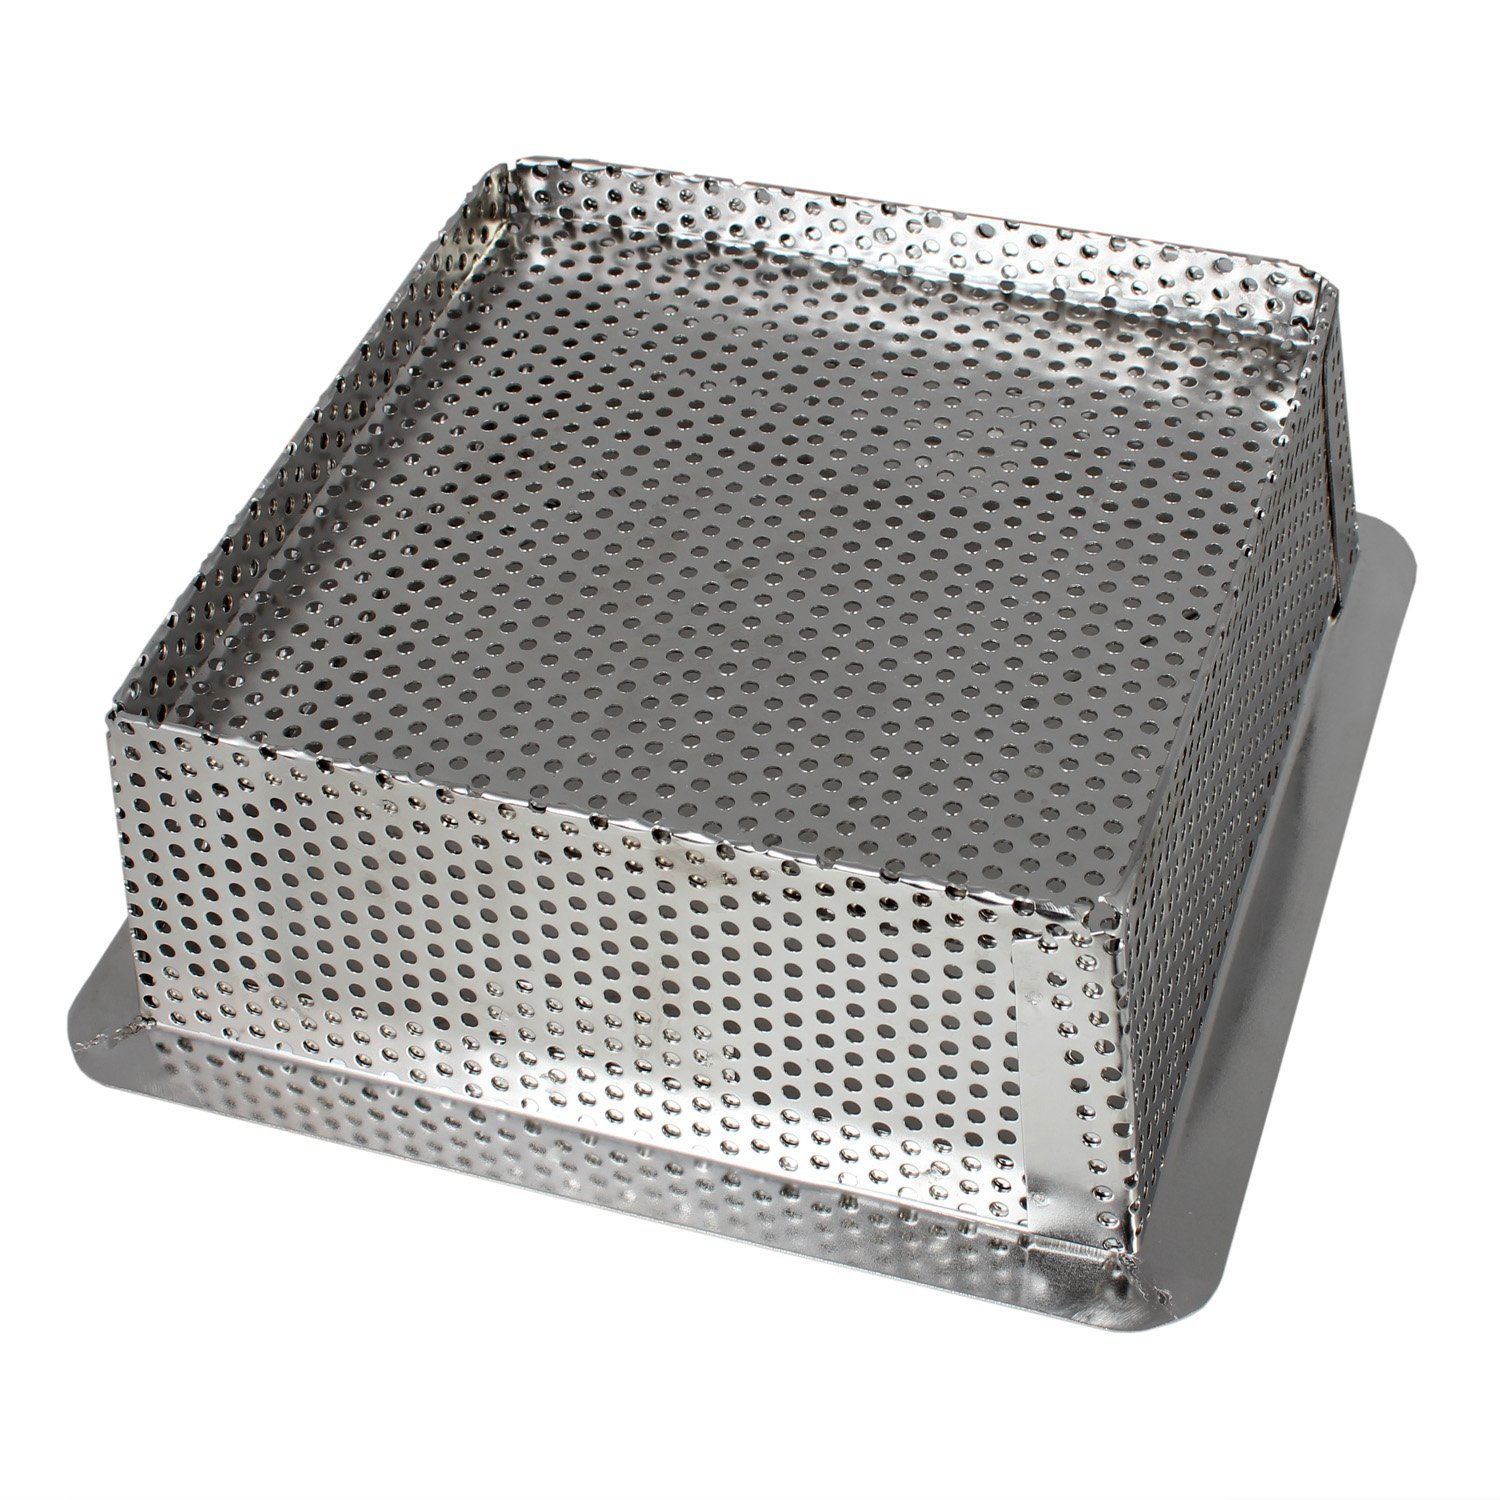 FSQ Floor Sink Basket Drain Strainer